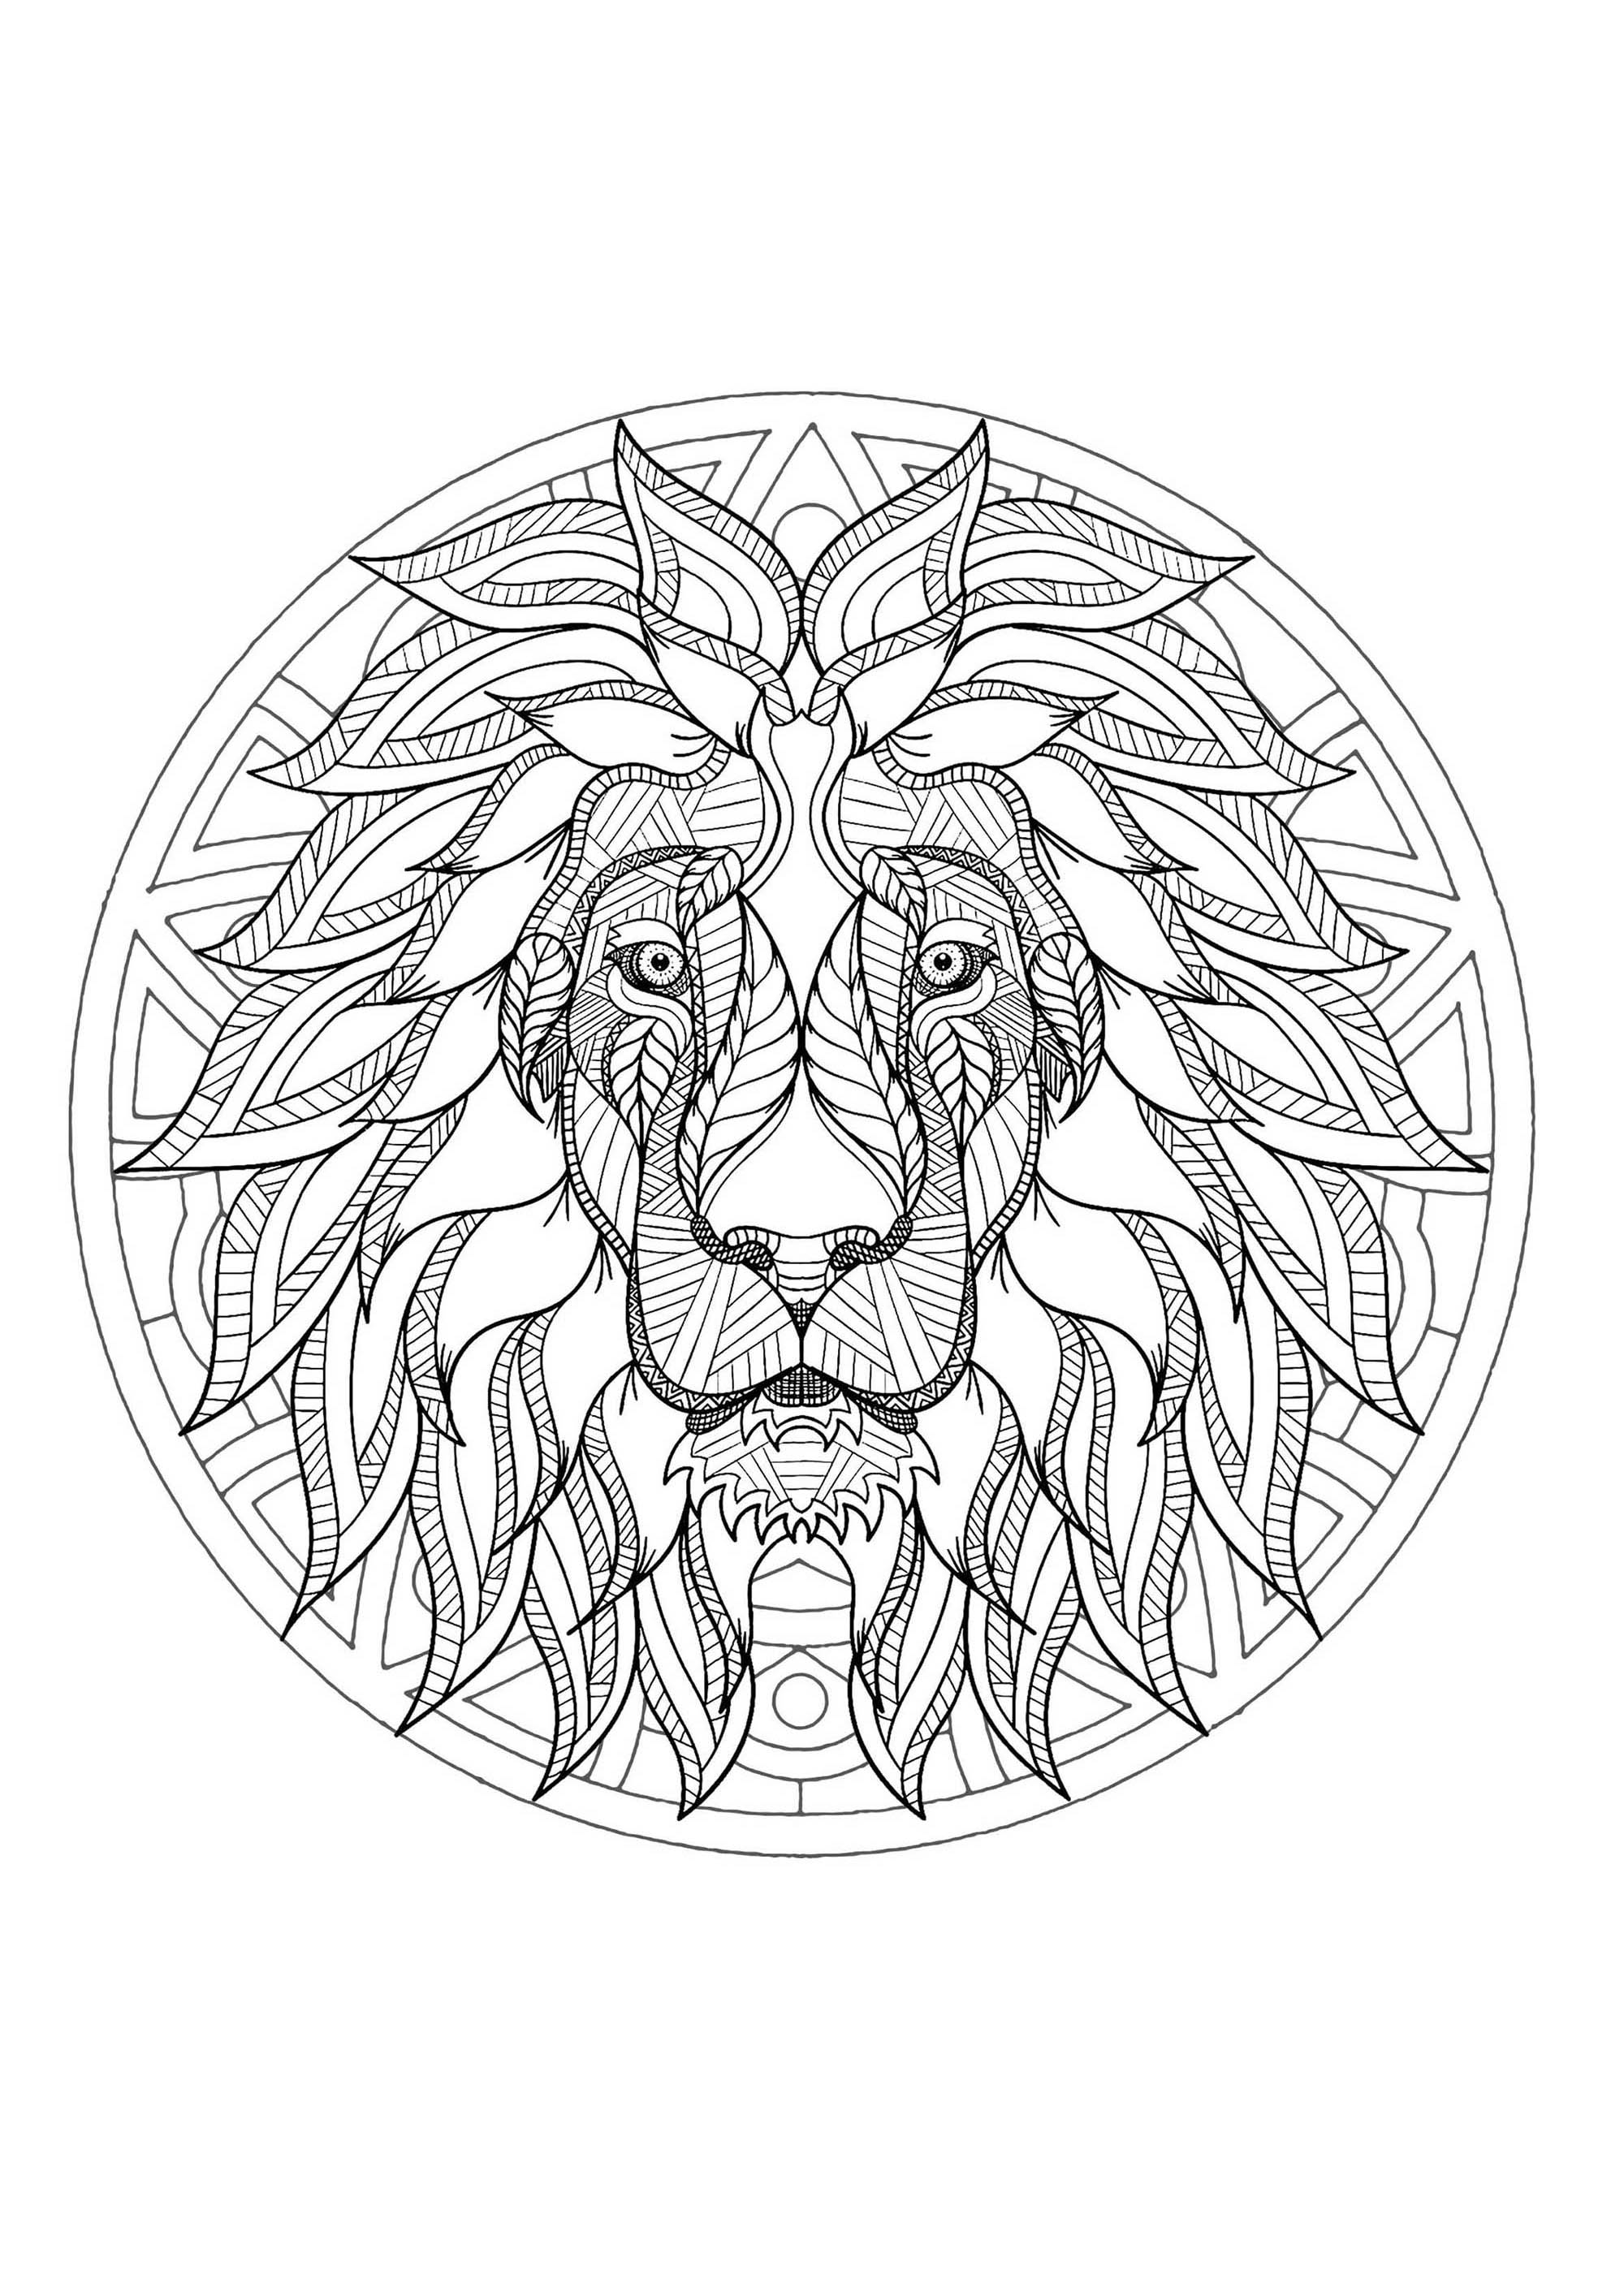 Complex Mandala Coloring Page With Majestic Lion Head 3